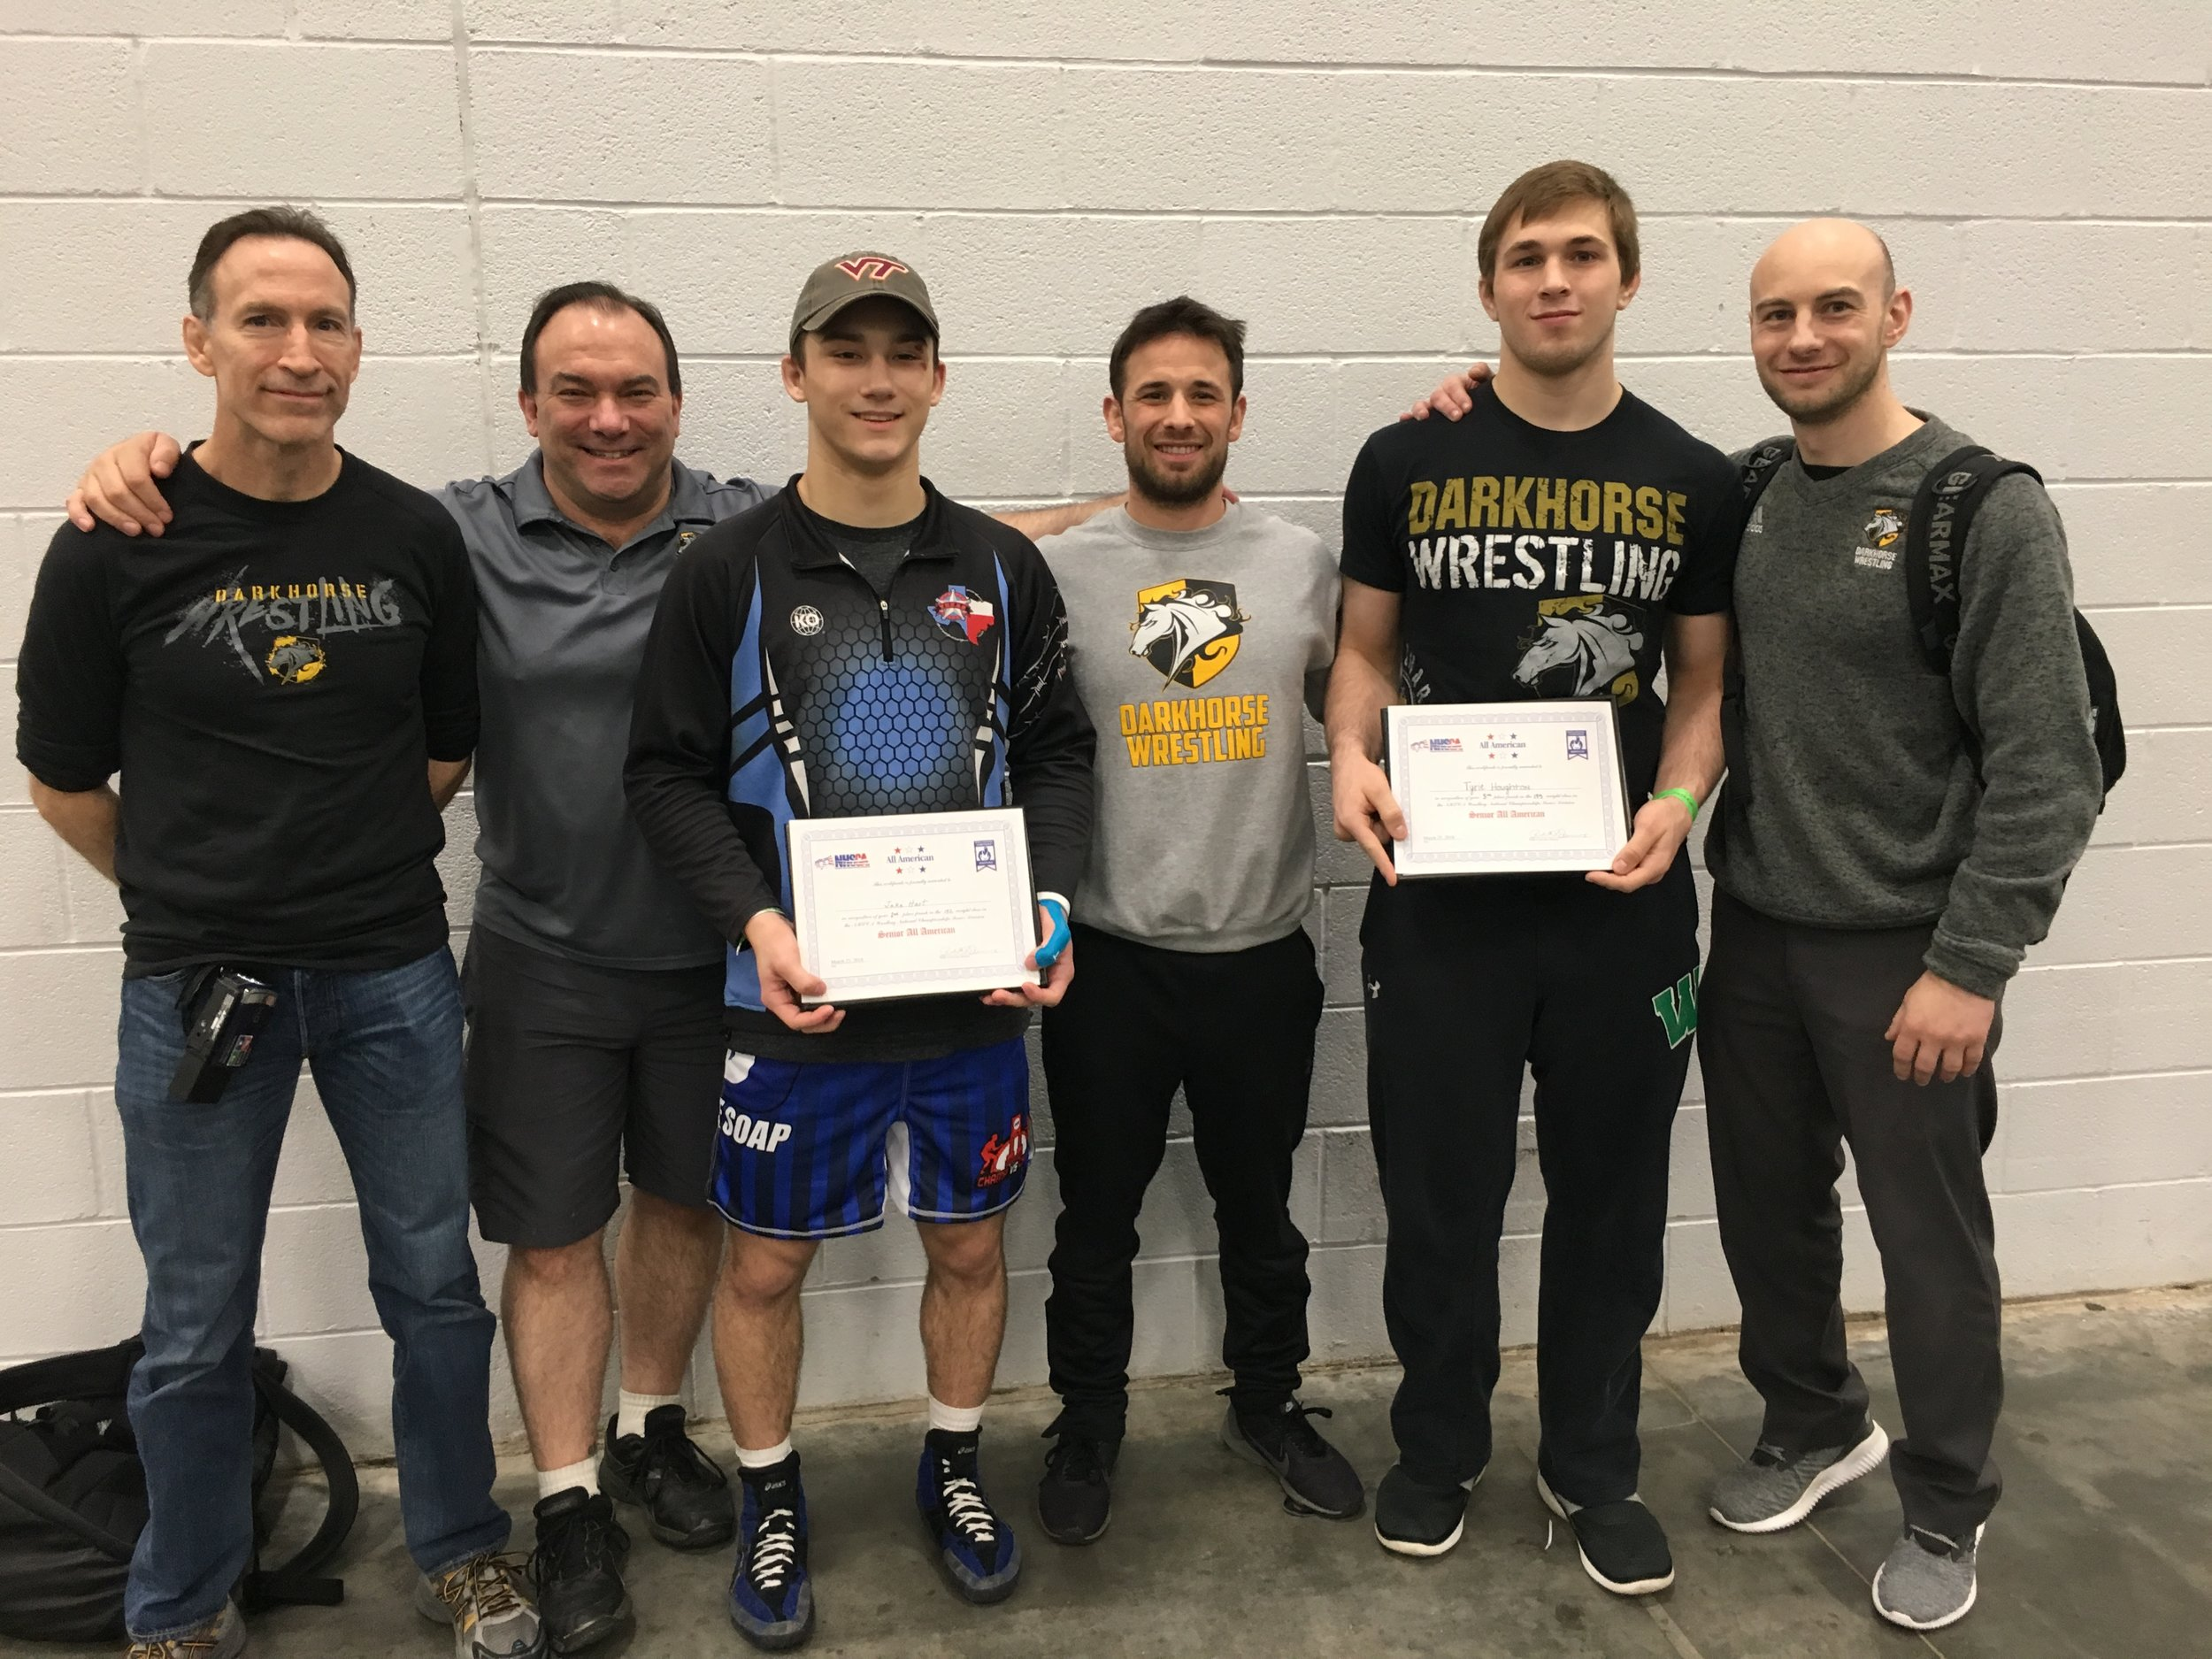 Congrats to NHSCA All-americans - Jake Hart (Runner up) and Tyrie Houghton (5th)